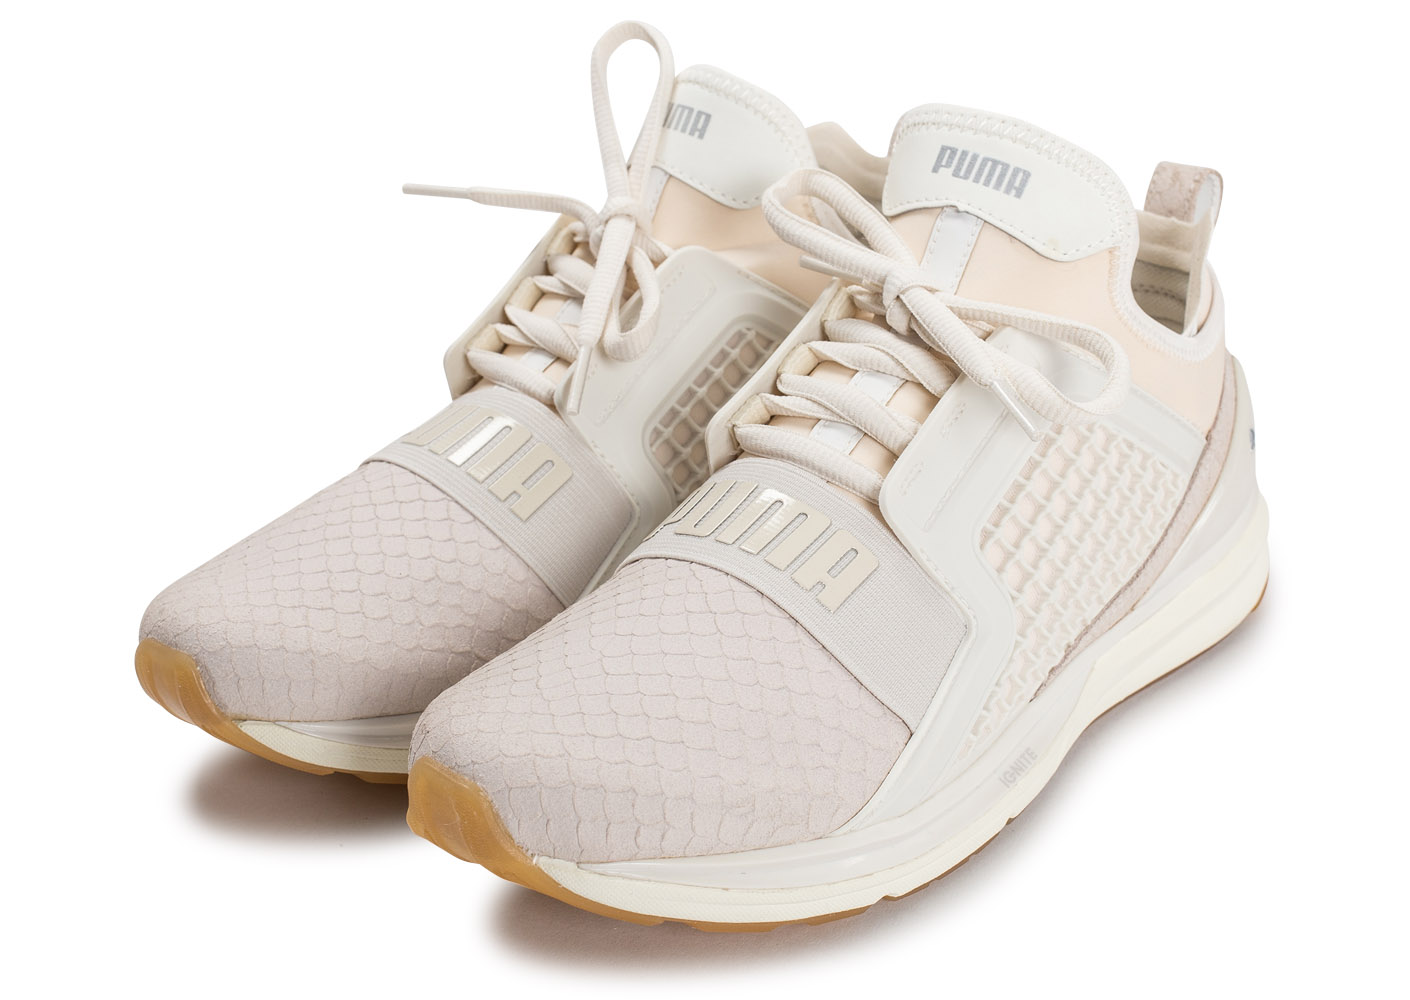 Limitless Chaussures Ignite Homme populaire Puma pwxUUSP